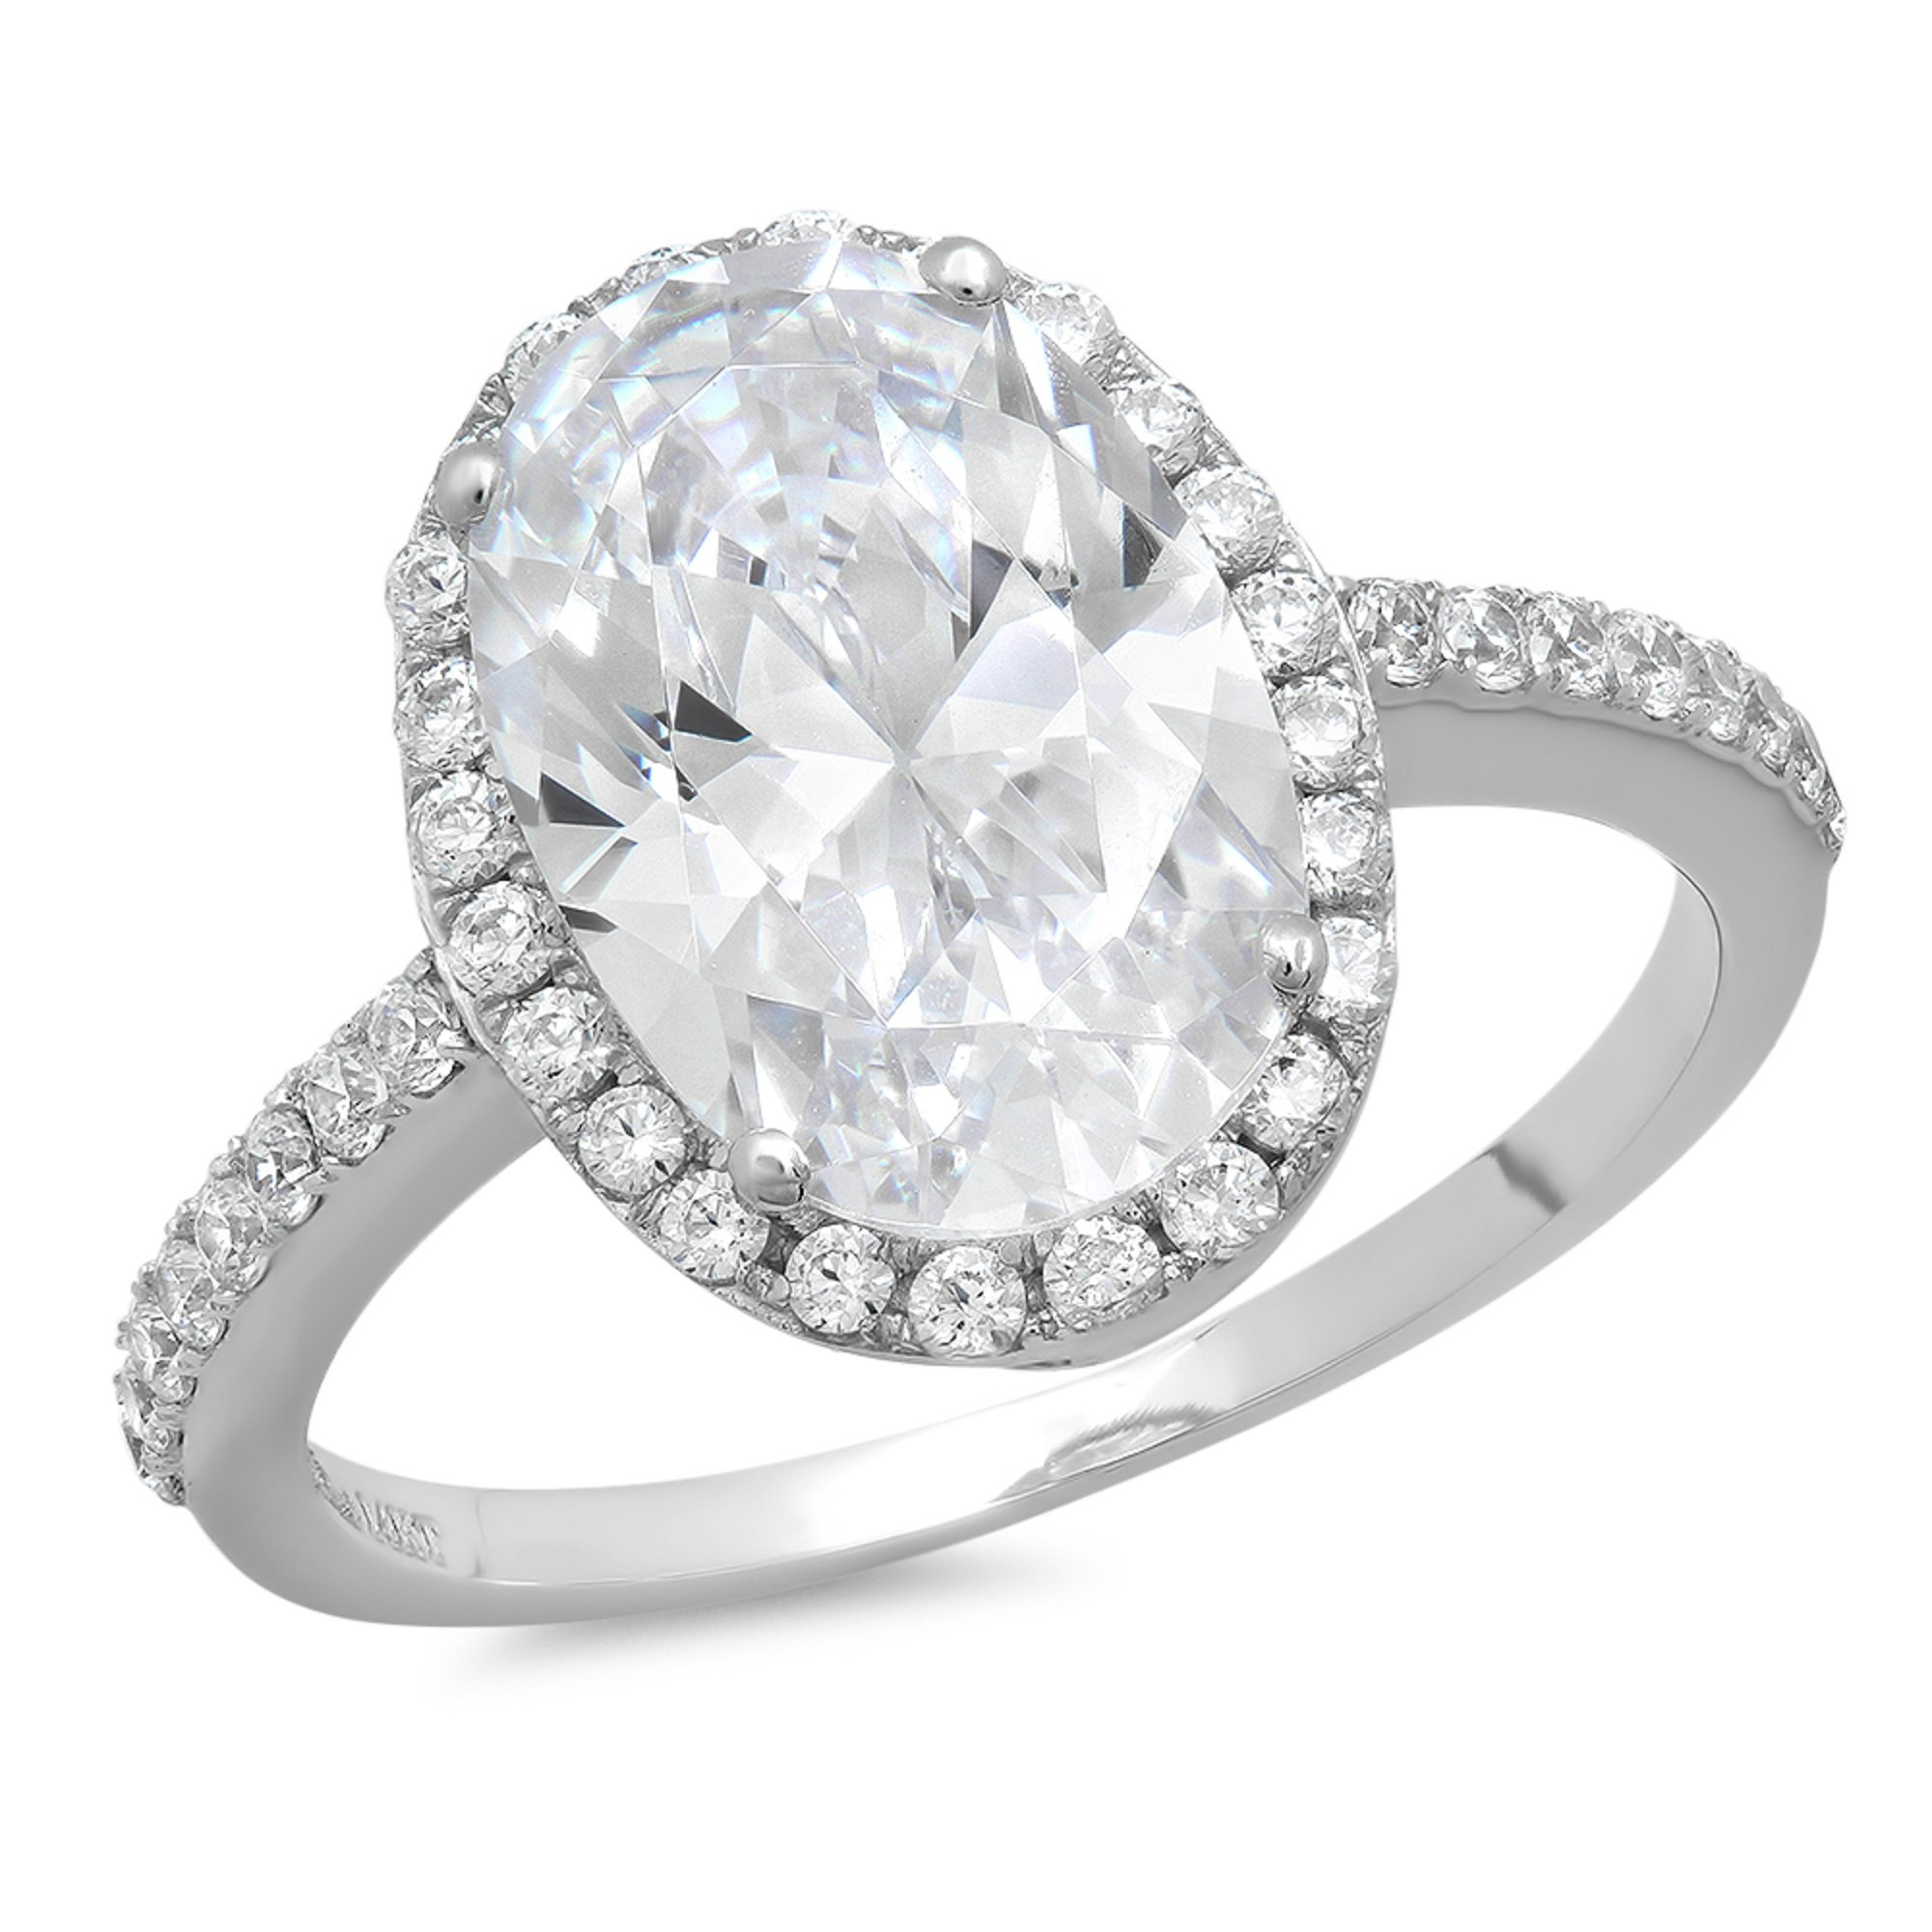 3.58 CT Oval Cut CZ Halo Solitaire Wedding Engagement Ring Bridal band 14k White Gold, Size 10.5